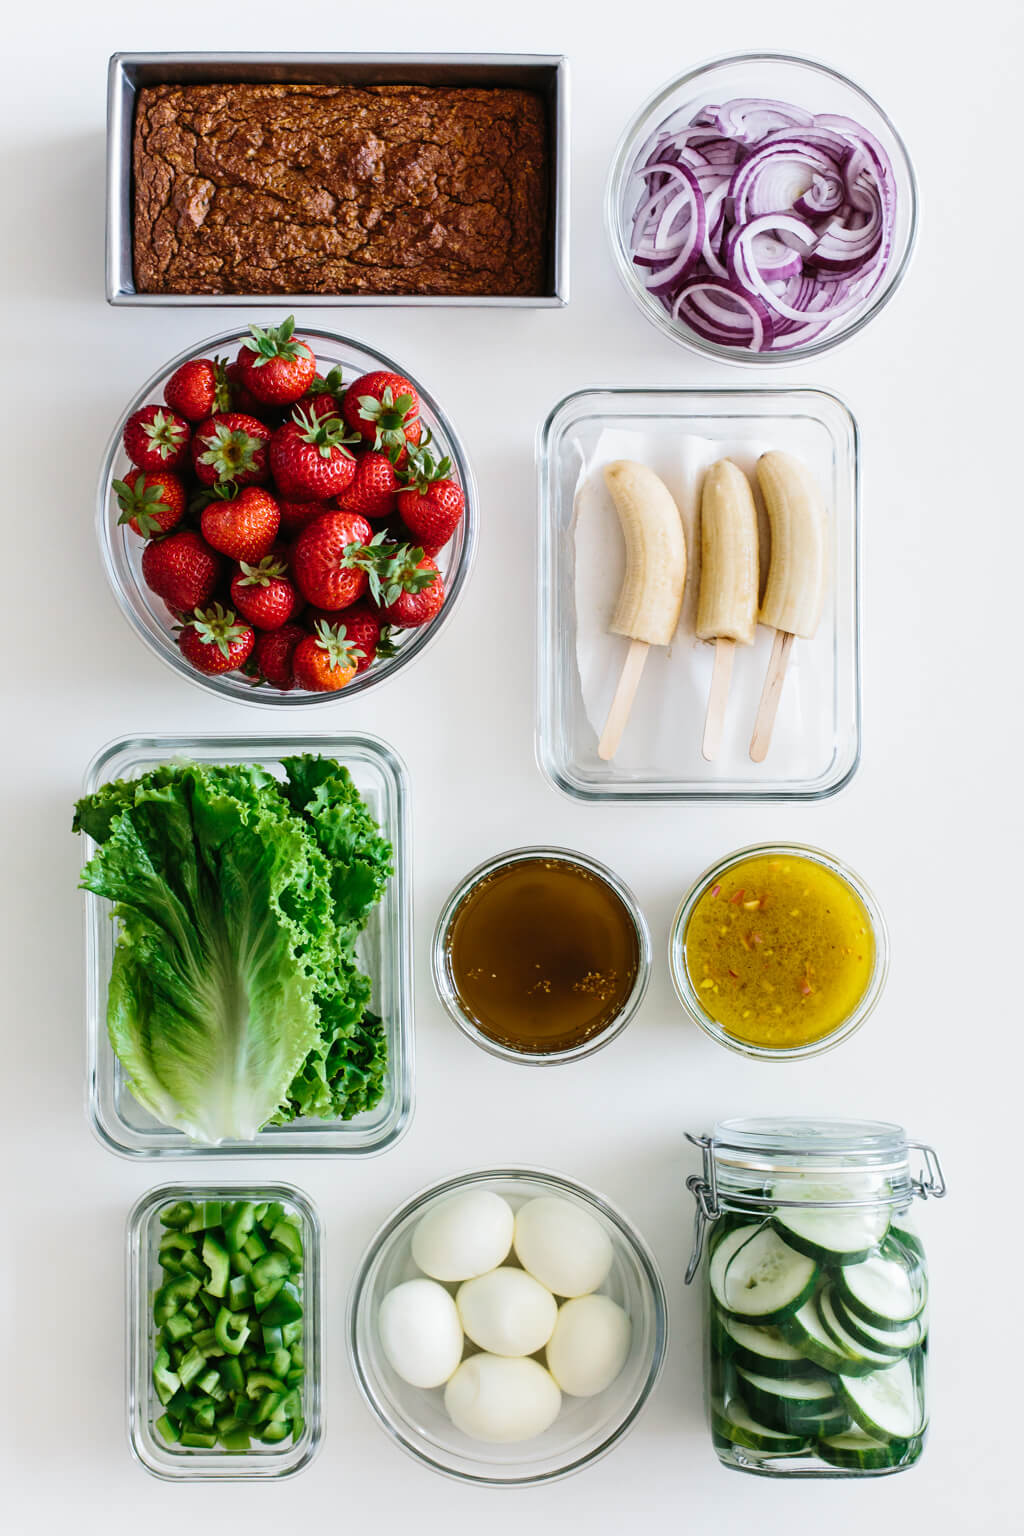 Have an endless supply of light and fresh meals throughout the summer with this new meal prep plan. Today I'm showing you how to turn 10 ingredients into delicious smoothies, vibrant salads and satiating snacks.